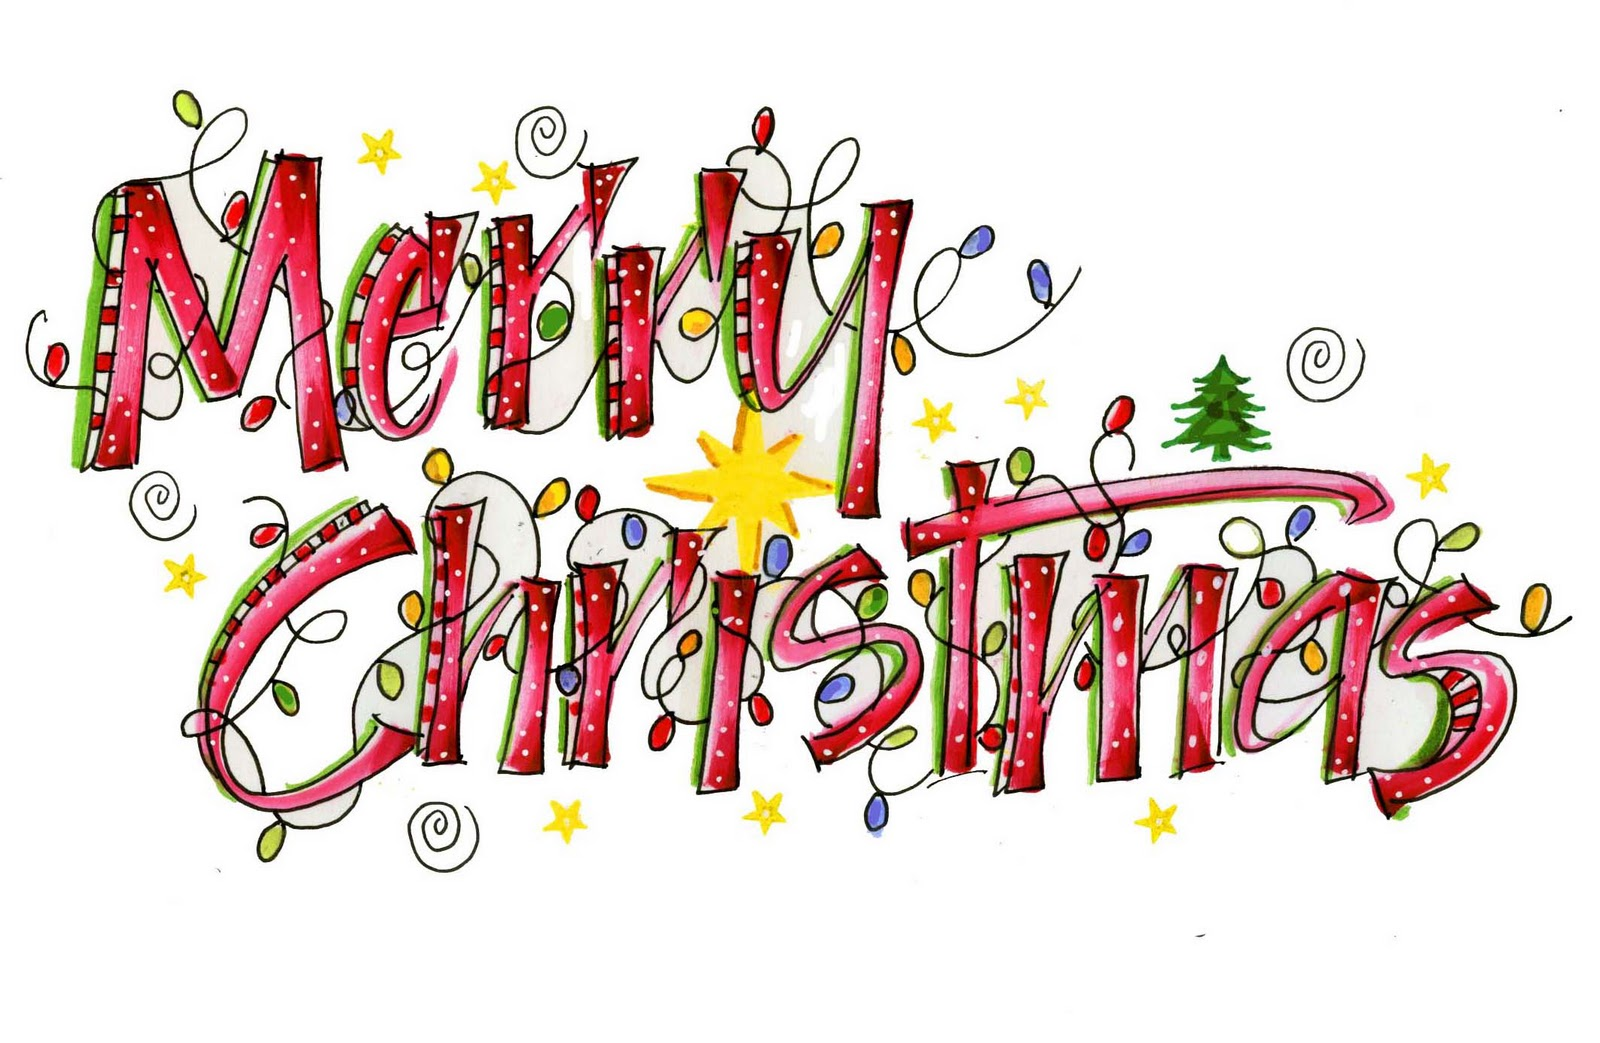 Merry Christmas Everyone Steve Tierney S-Merry Christmas Everyone Steve Tierney S Blog-12